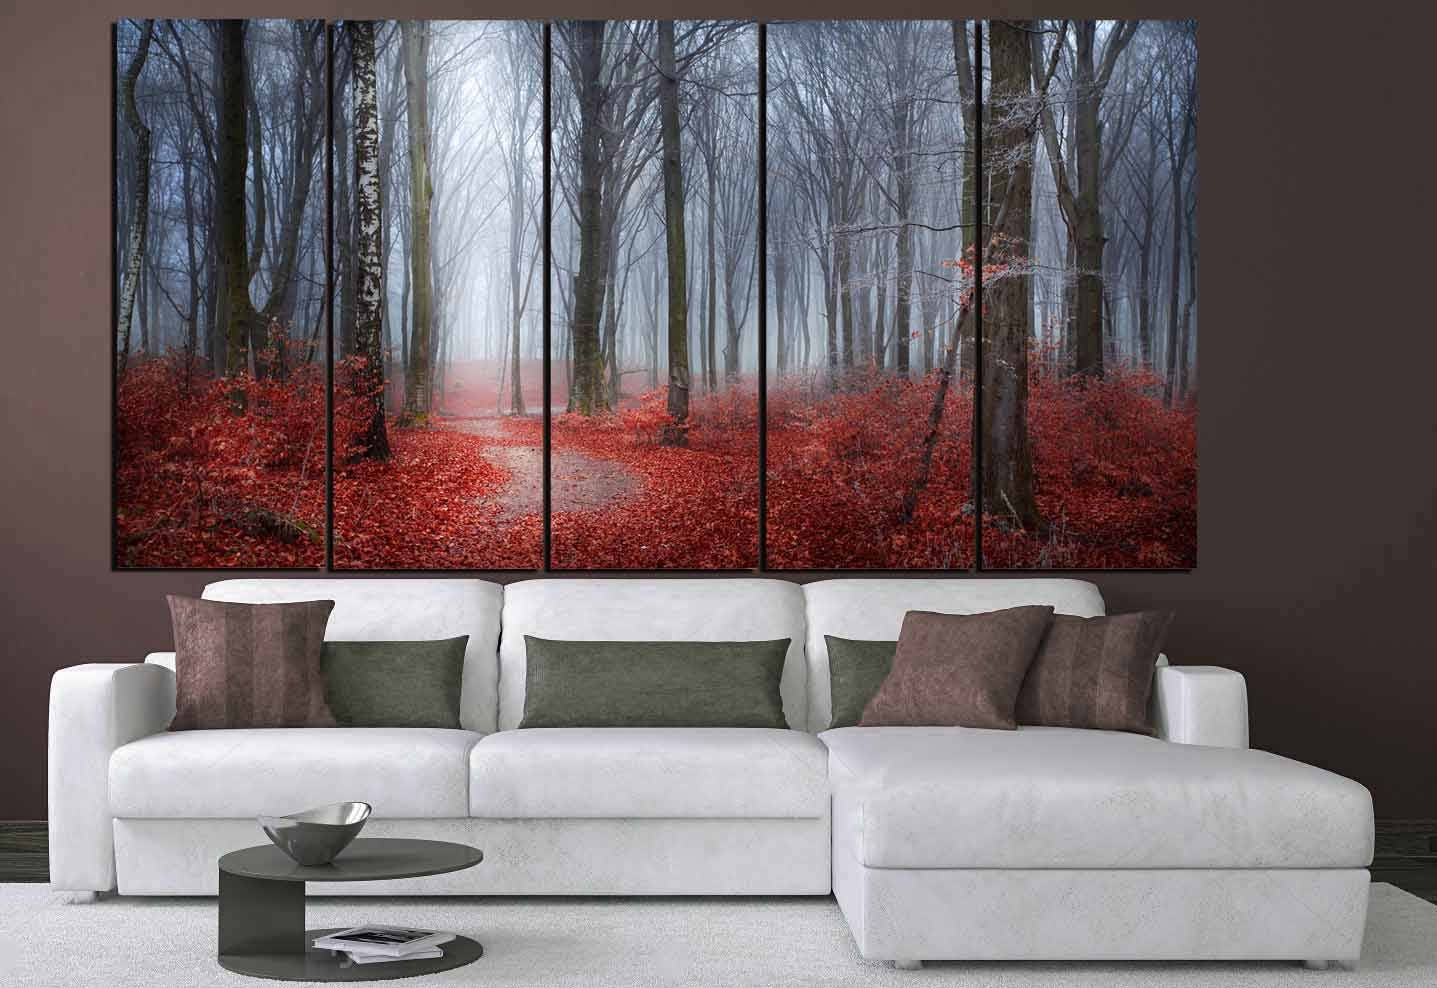 Nature Wall Art,Red Leaves Blue Mist Art,Red Leaves Forest,Nature Scenery  Living Room Wall Decor,Interior Design Wall Art,Foggy Forest Art